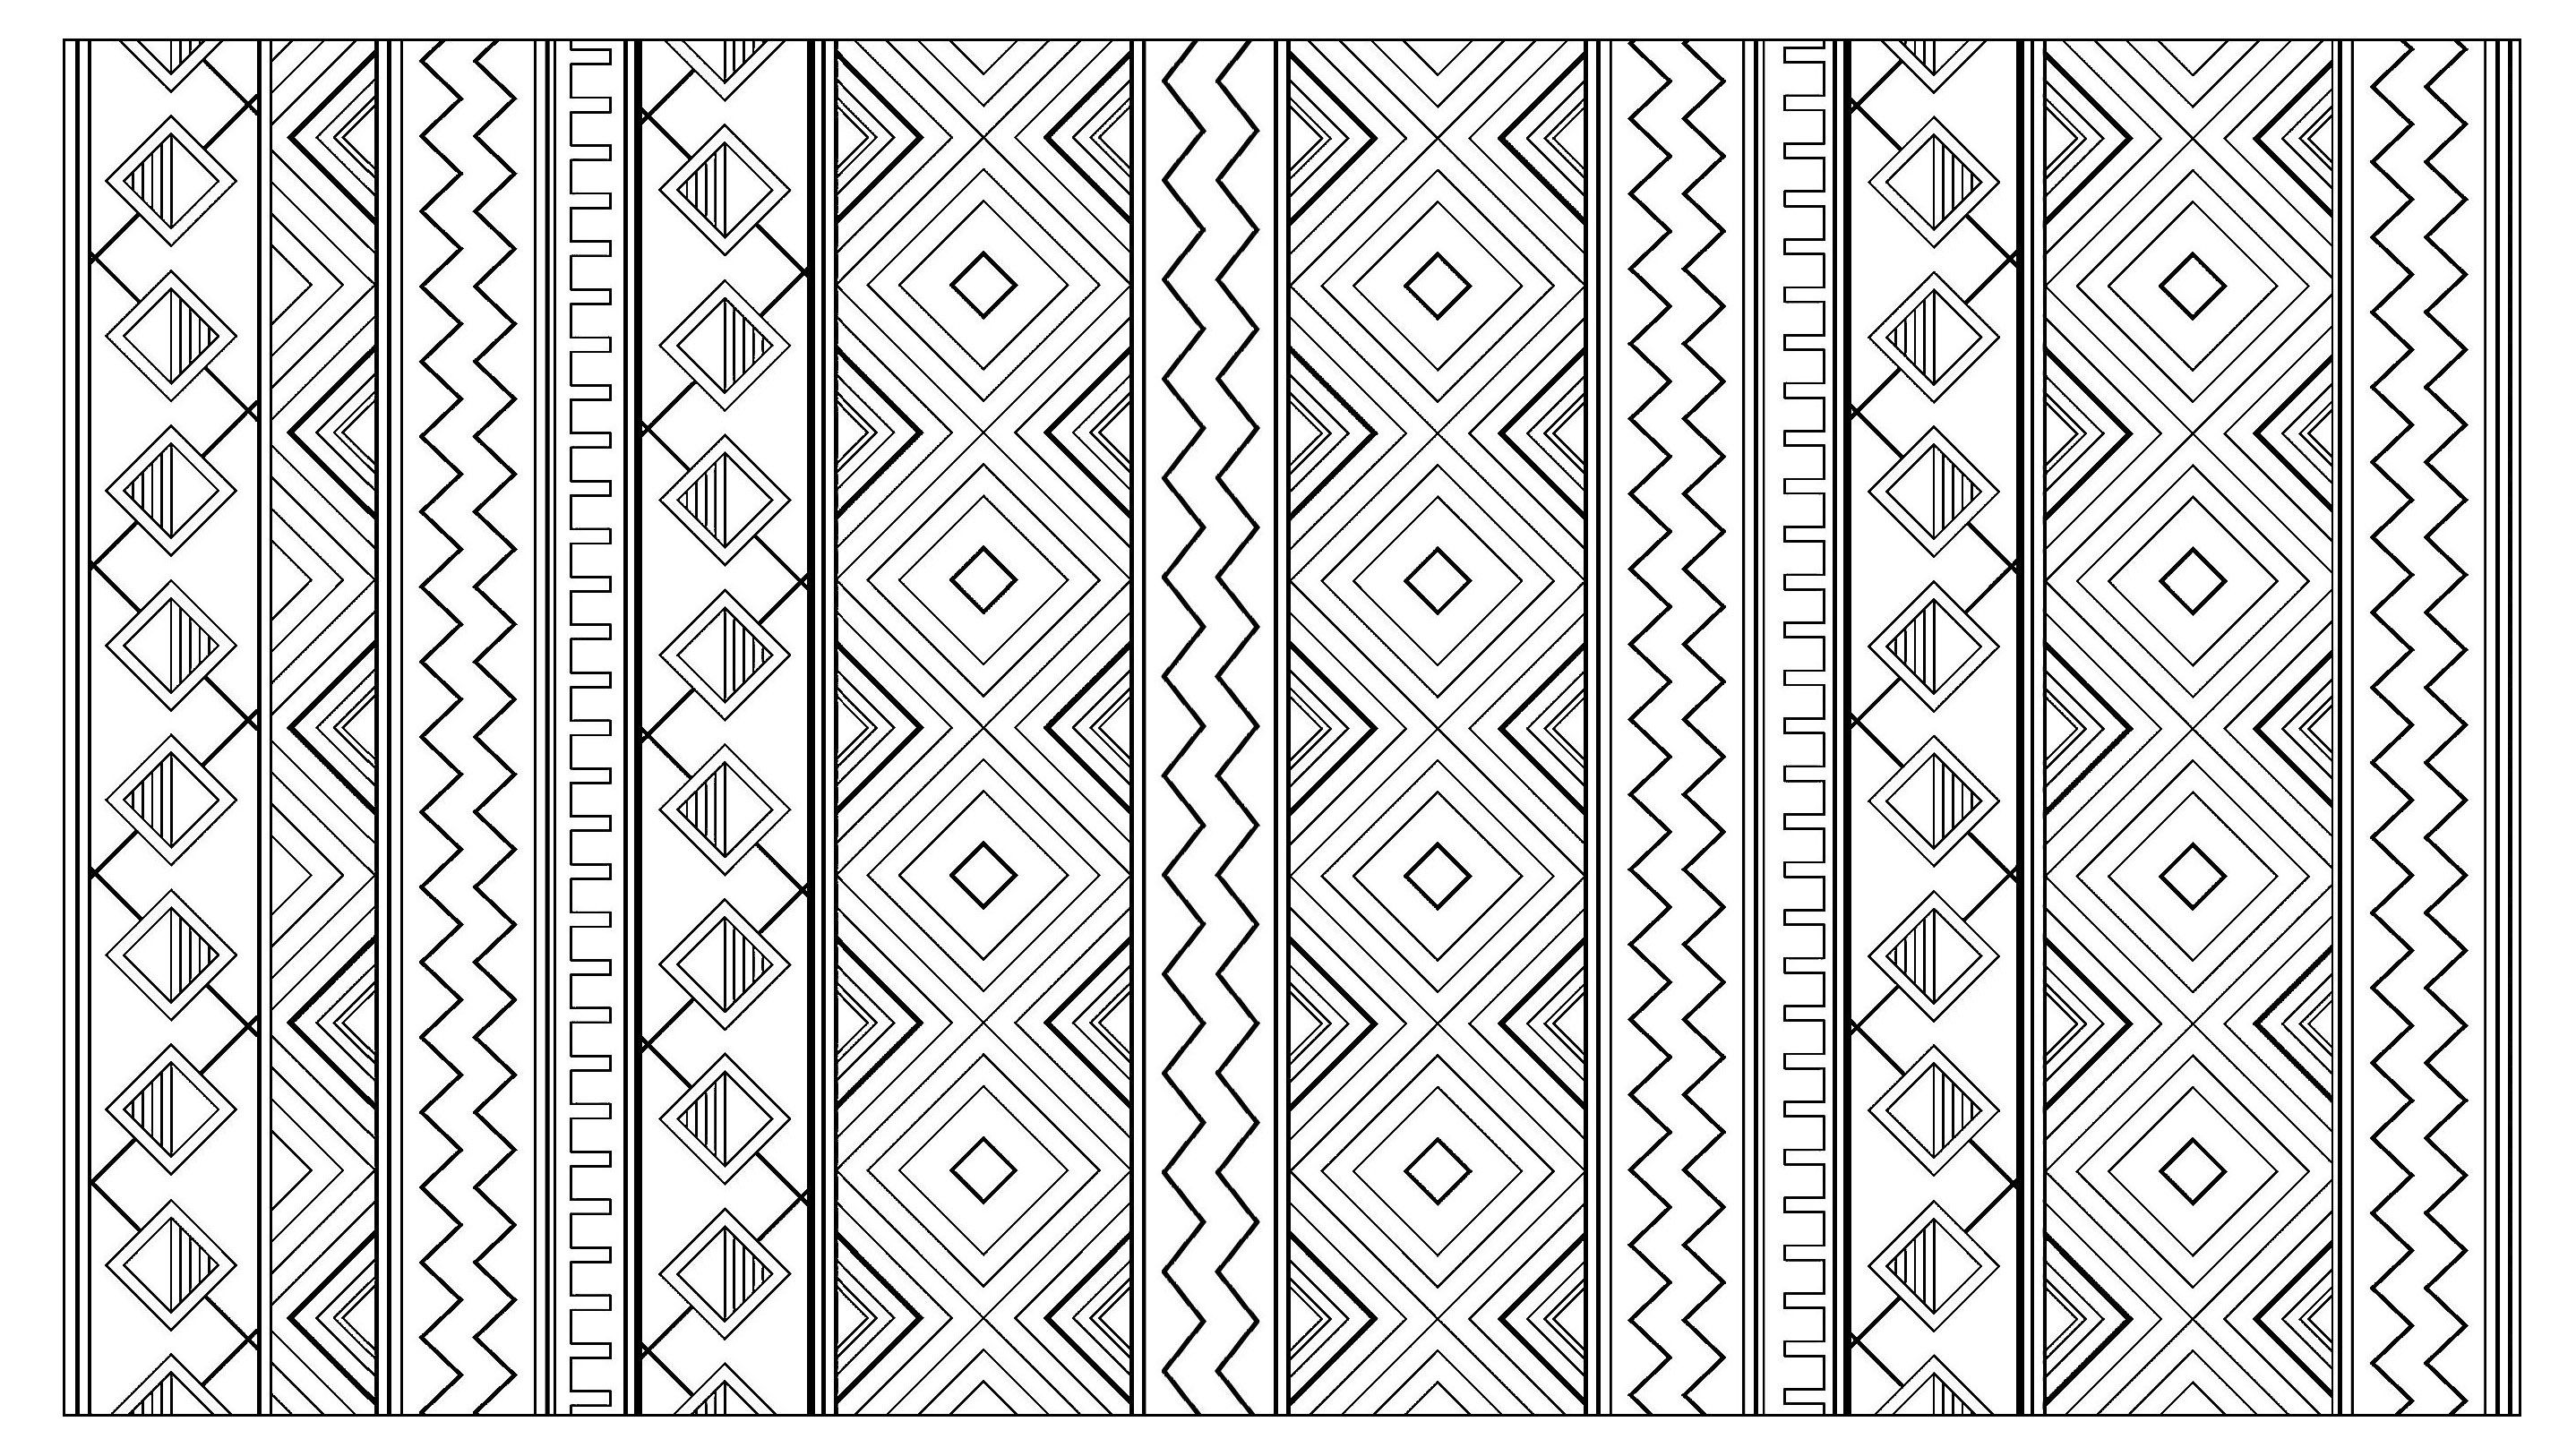 Patterns Inspired By Mayans Aztecs And Incas From The